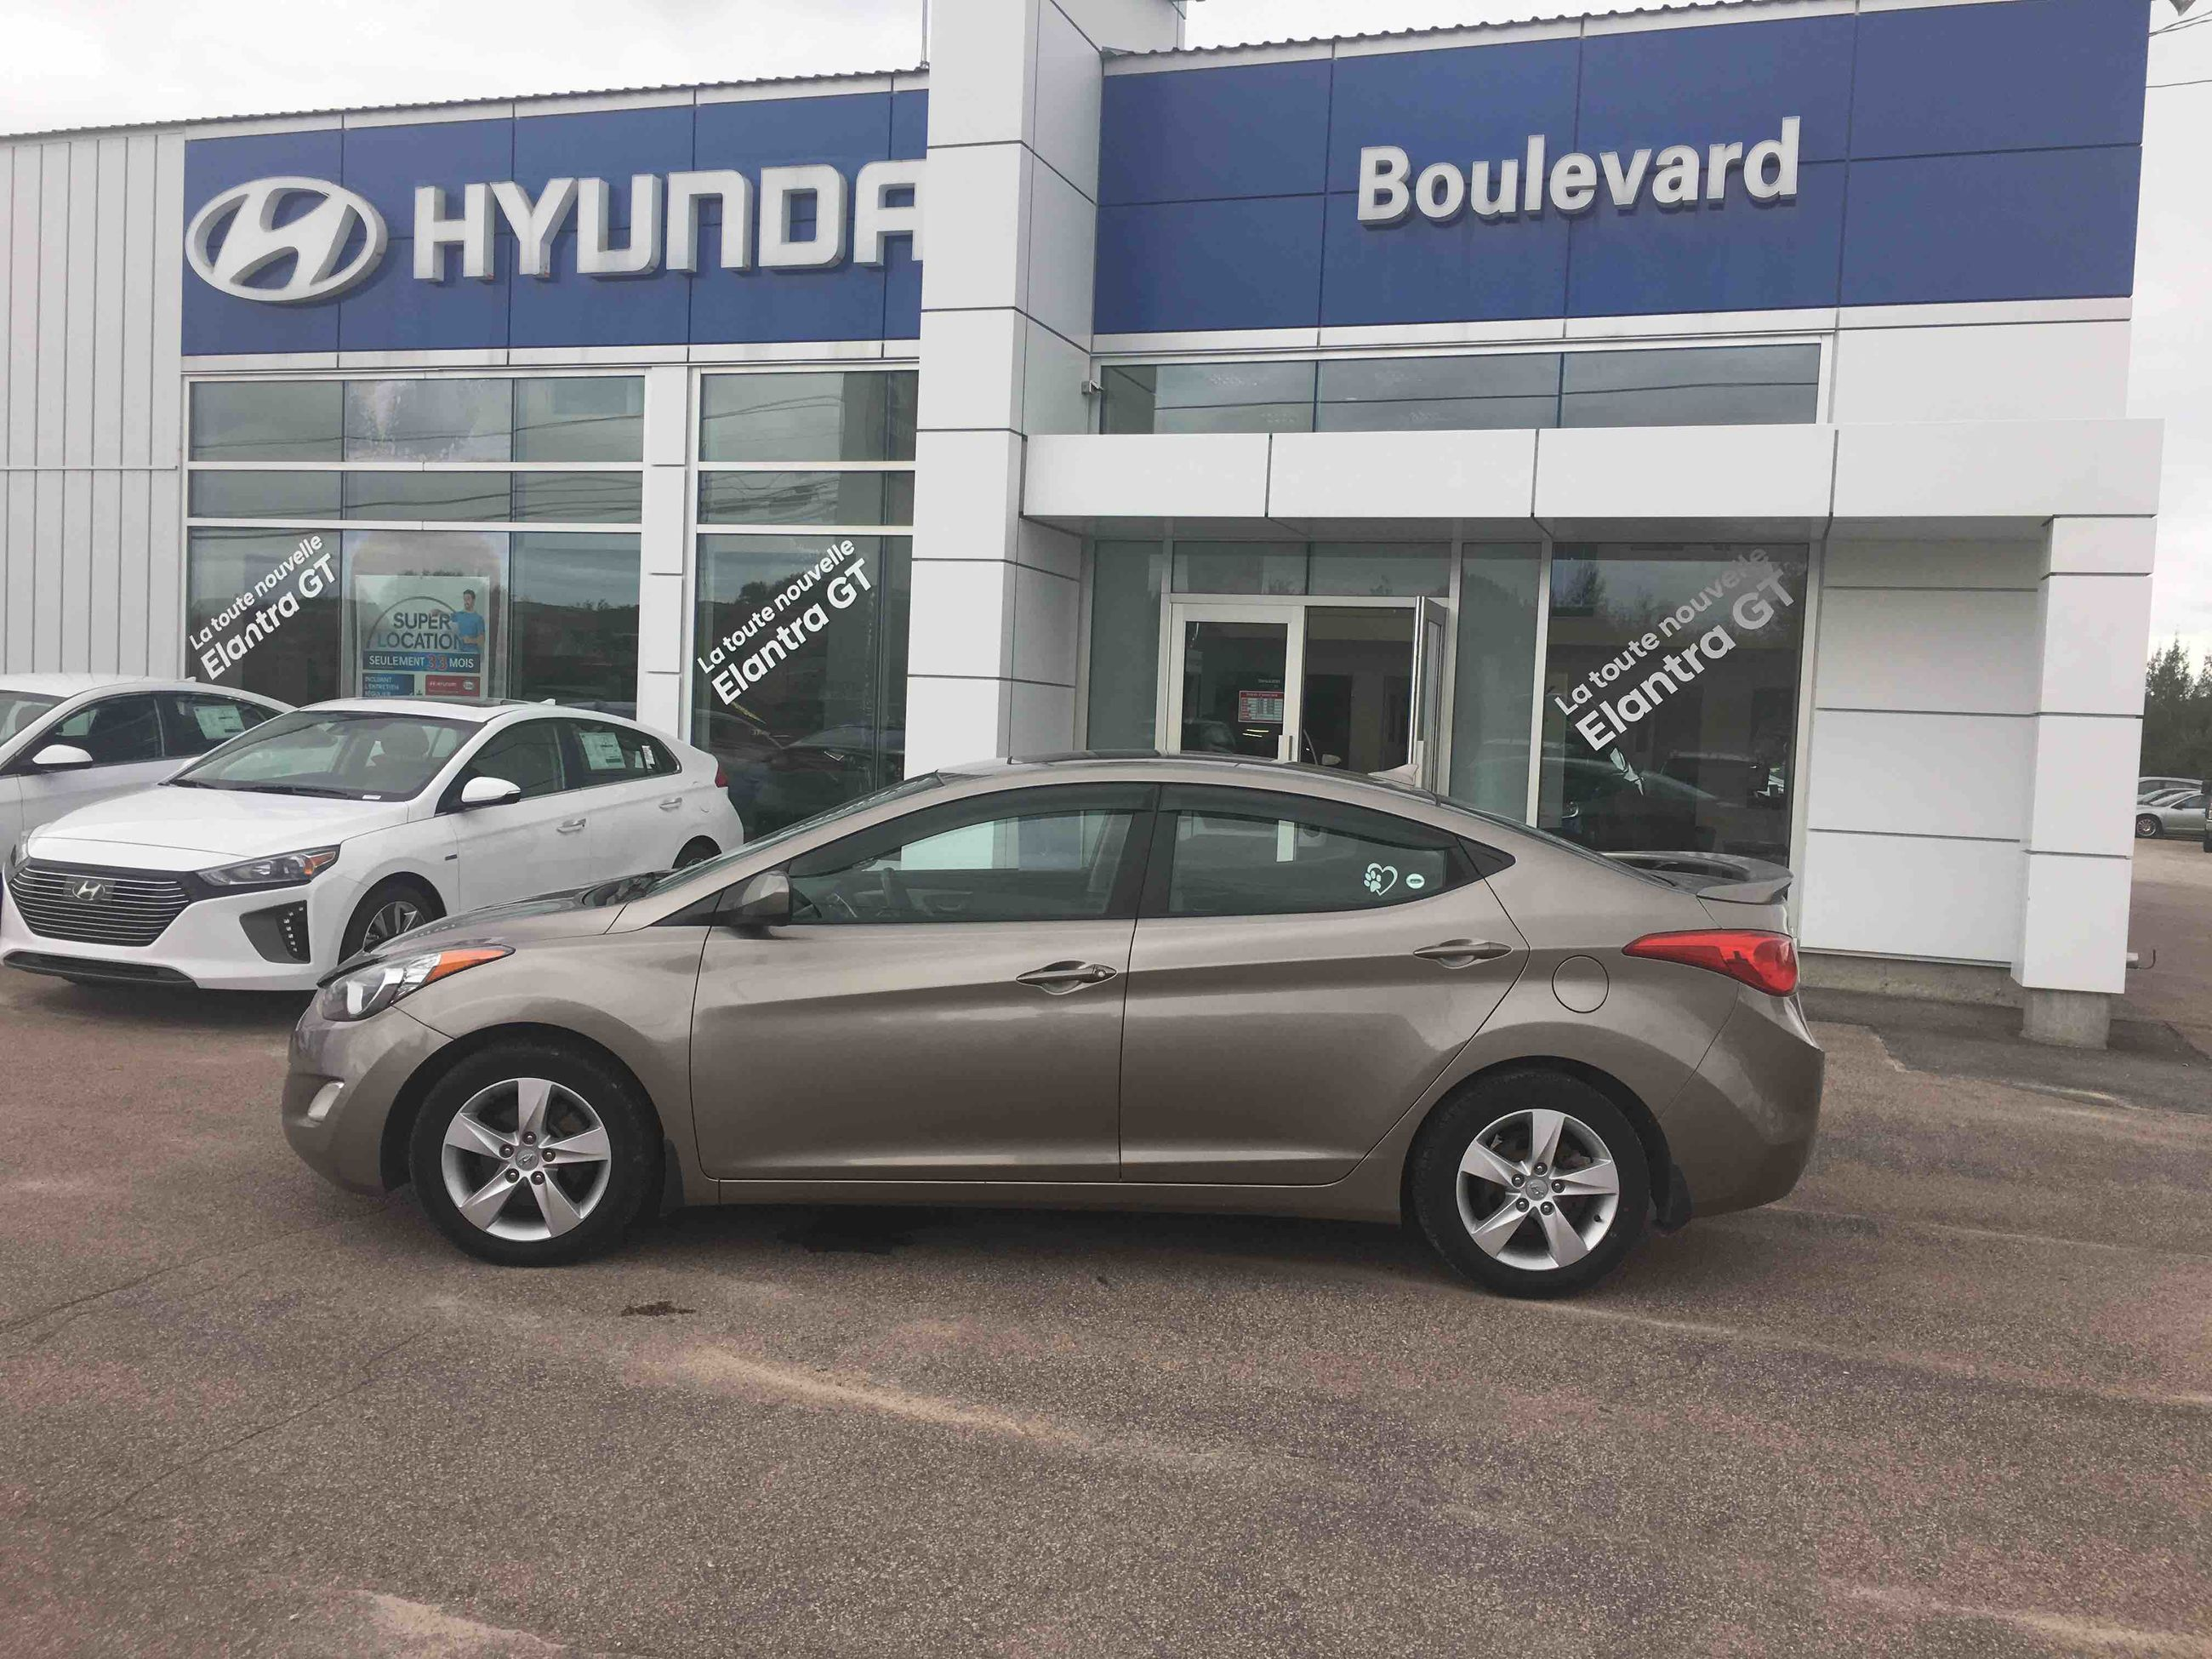 Used 2011 Hyundai Elantra Gls In Baie Comeau Inventory 2012 Fuel Filter Olivier Groupe Quebec